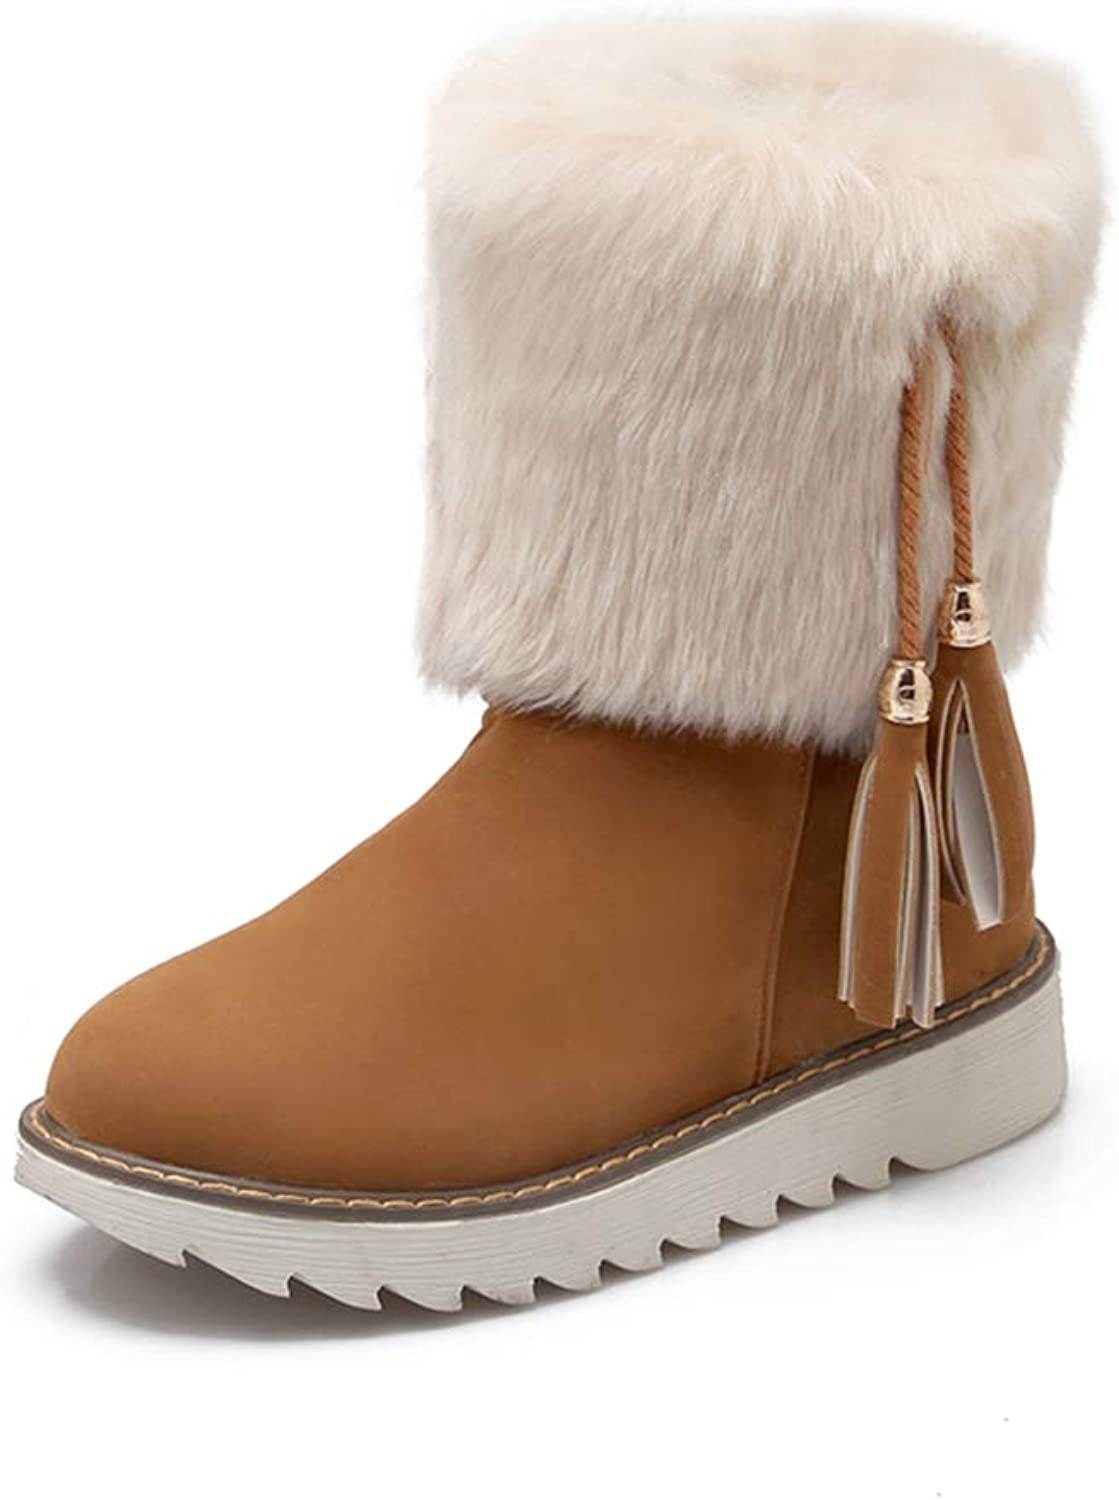 Hoxekle Woman Snow Boots Tassels Faux Fur Slip On Round Toe Casual Comfortable Warm Anti-Slip Winter Mid-Calf Boots